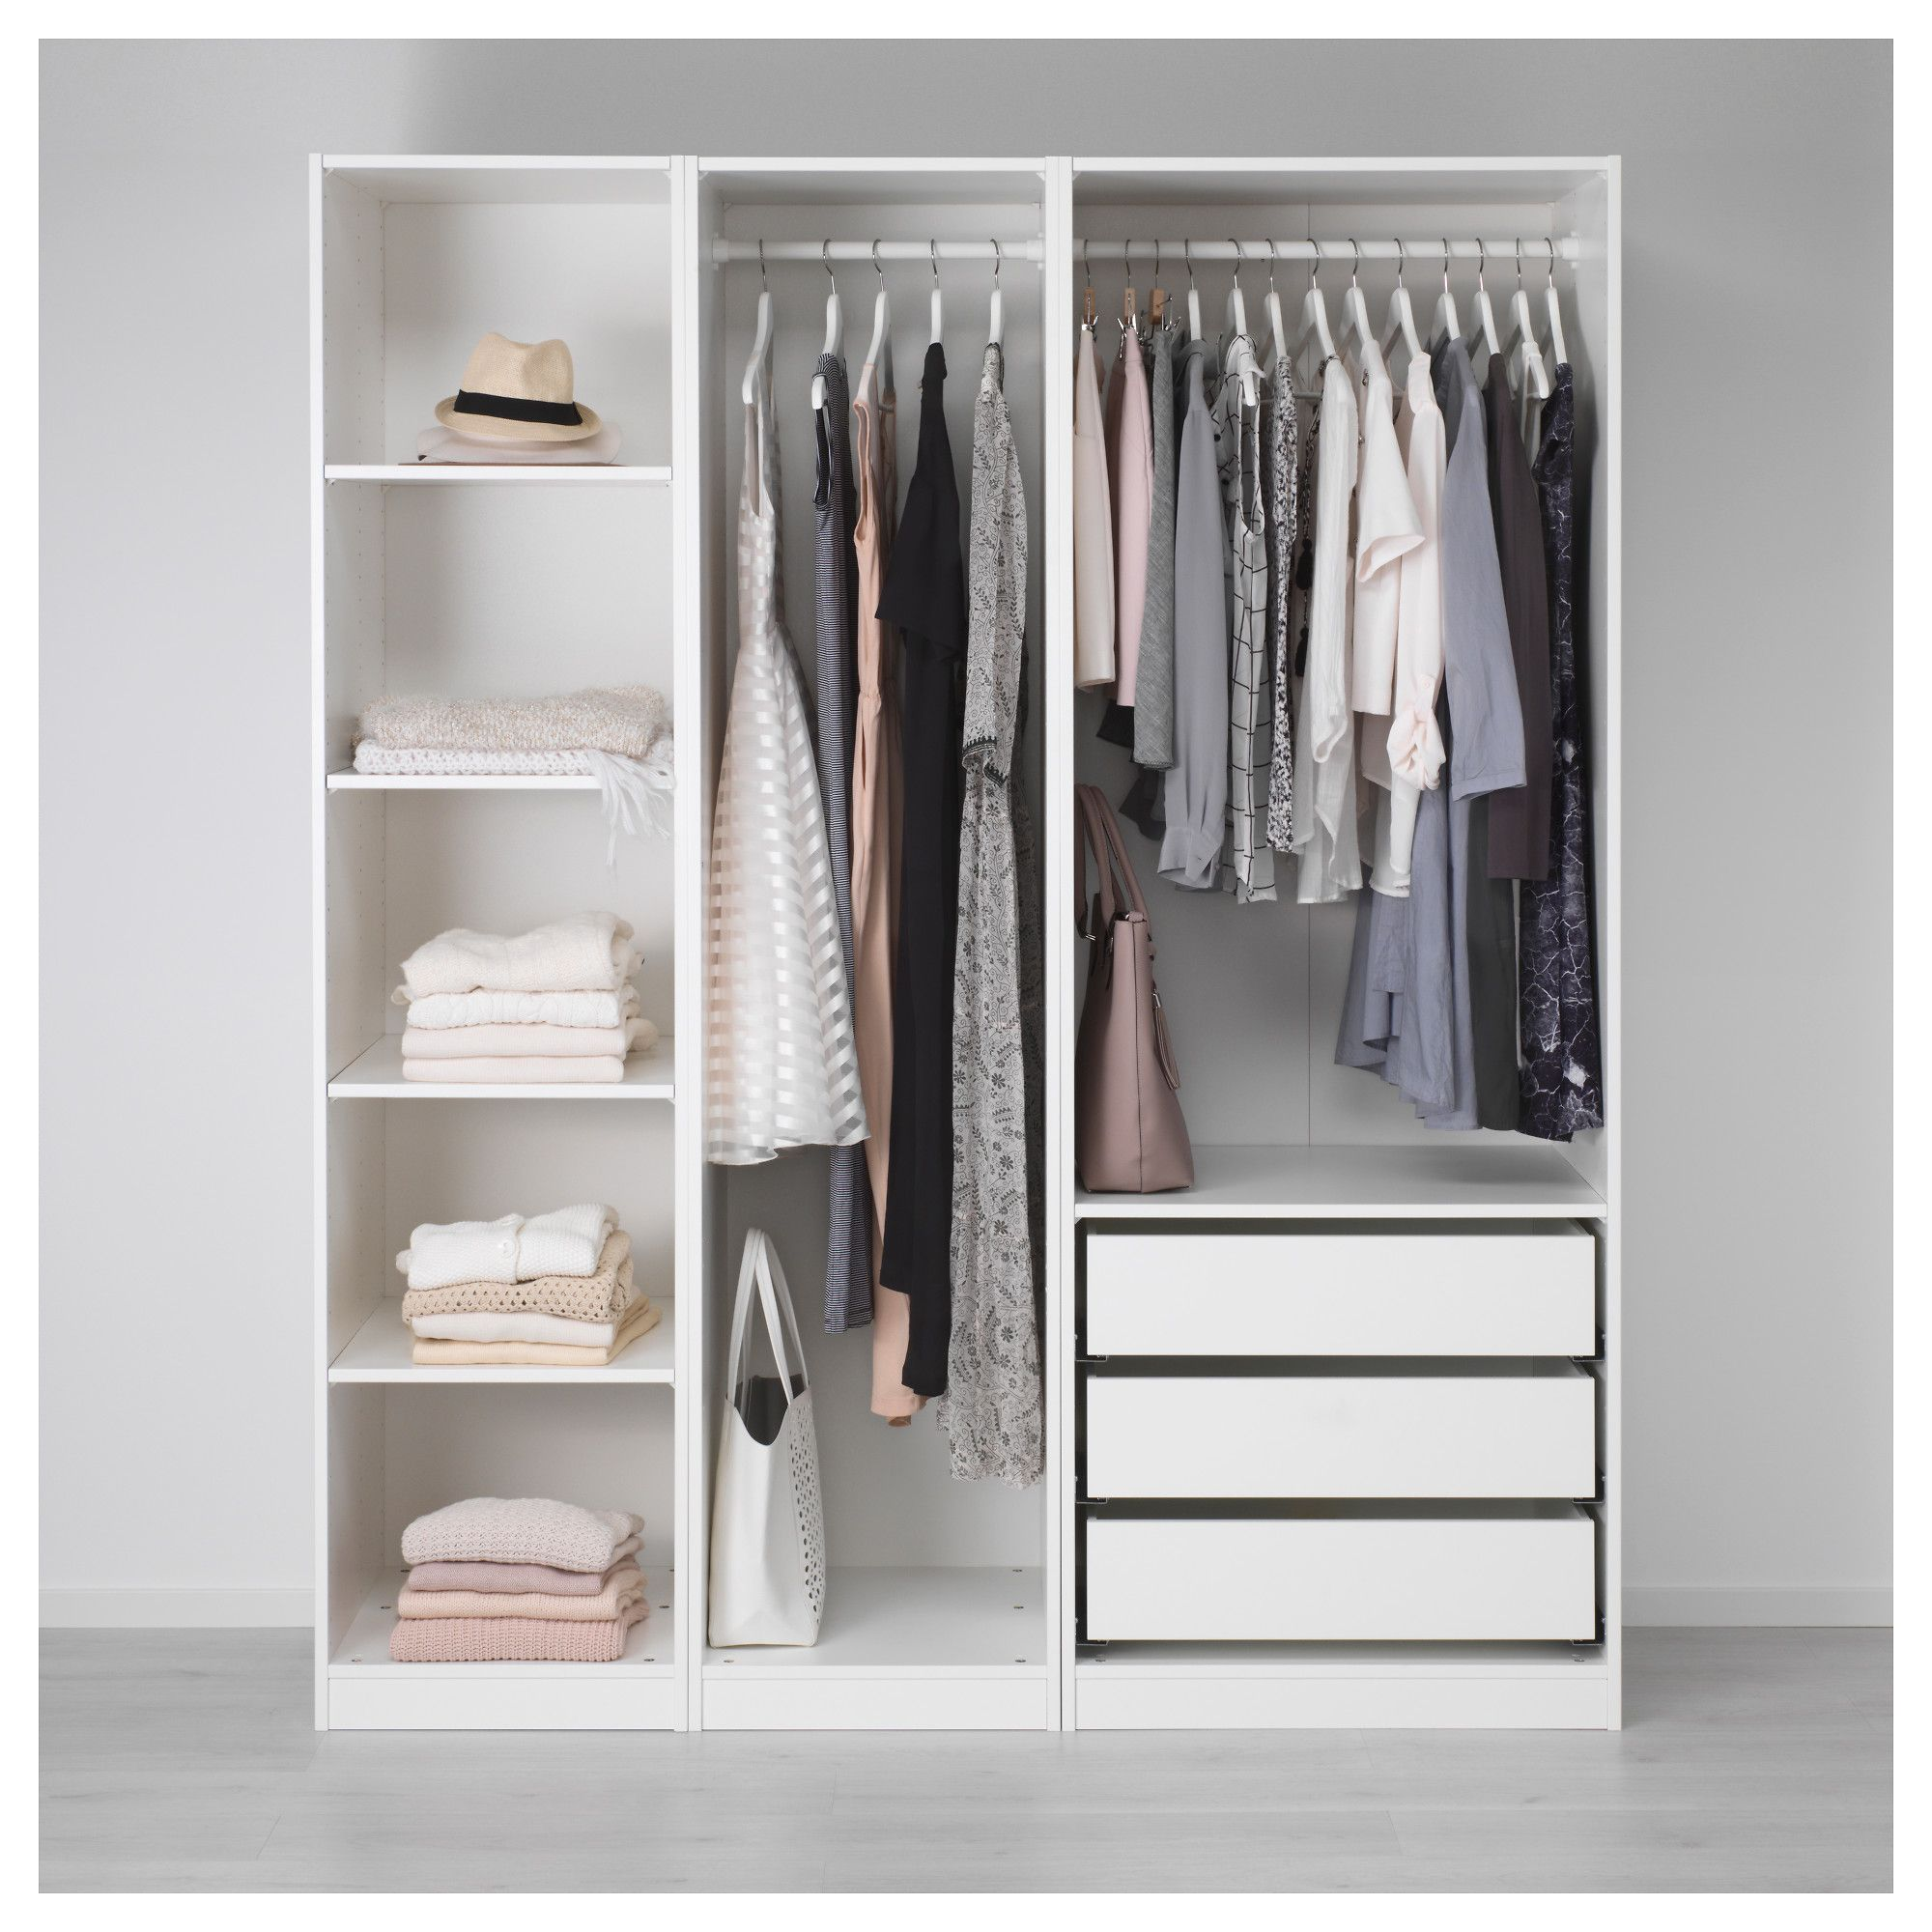 Pax Ikea Angle Ikea Pax Wardrobe White In 2019 Products Pax Garderobe